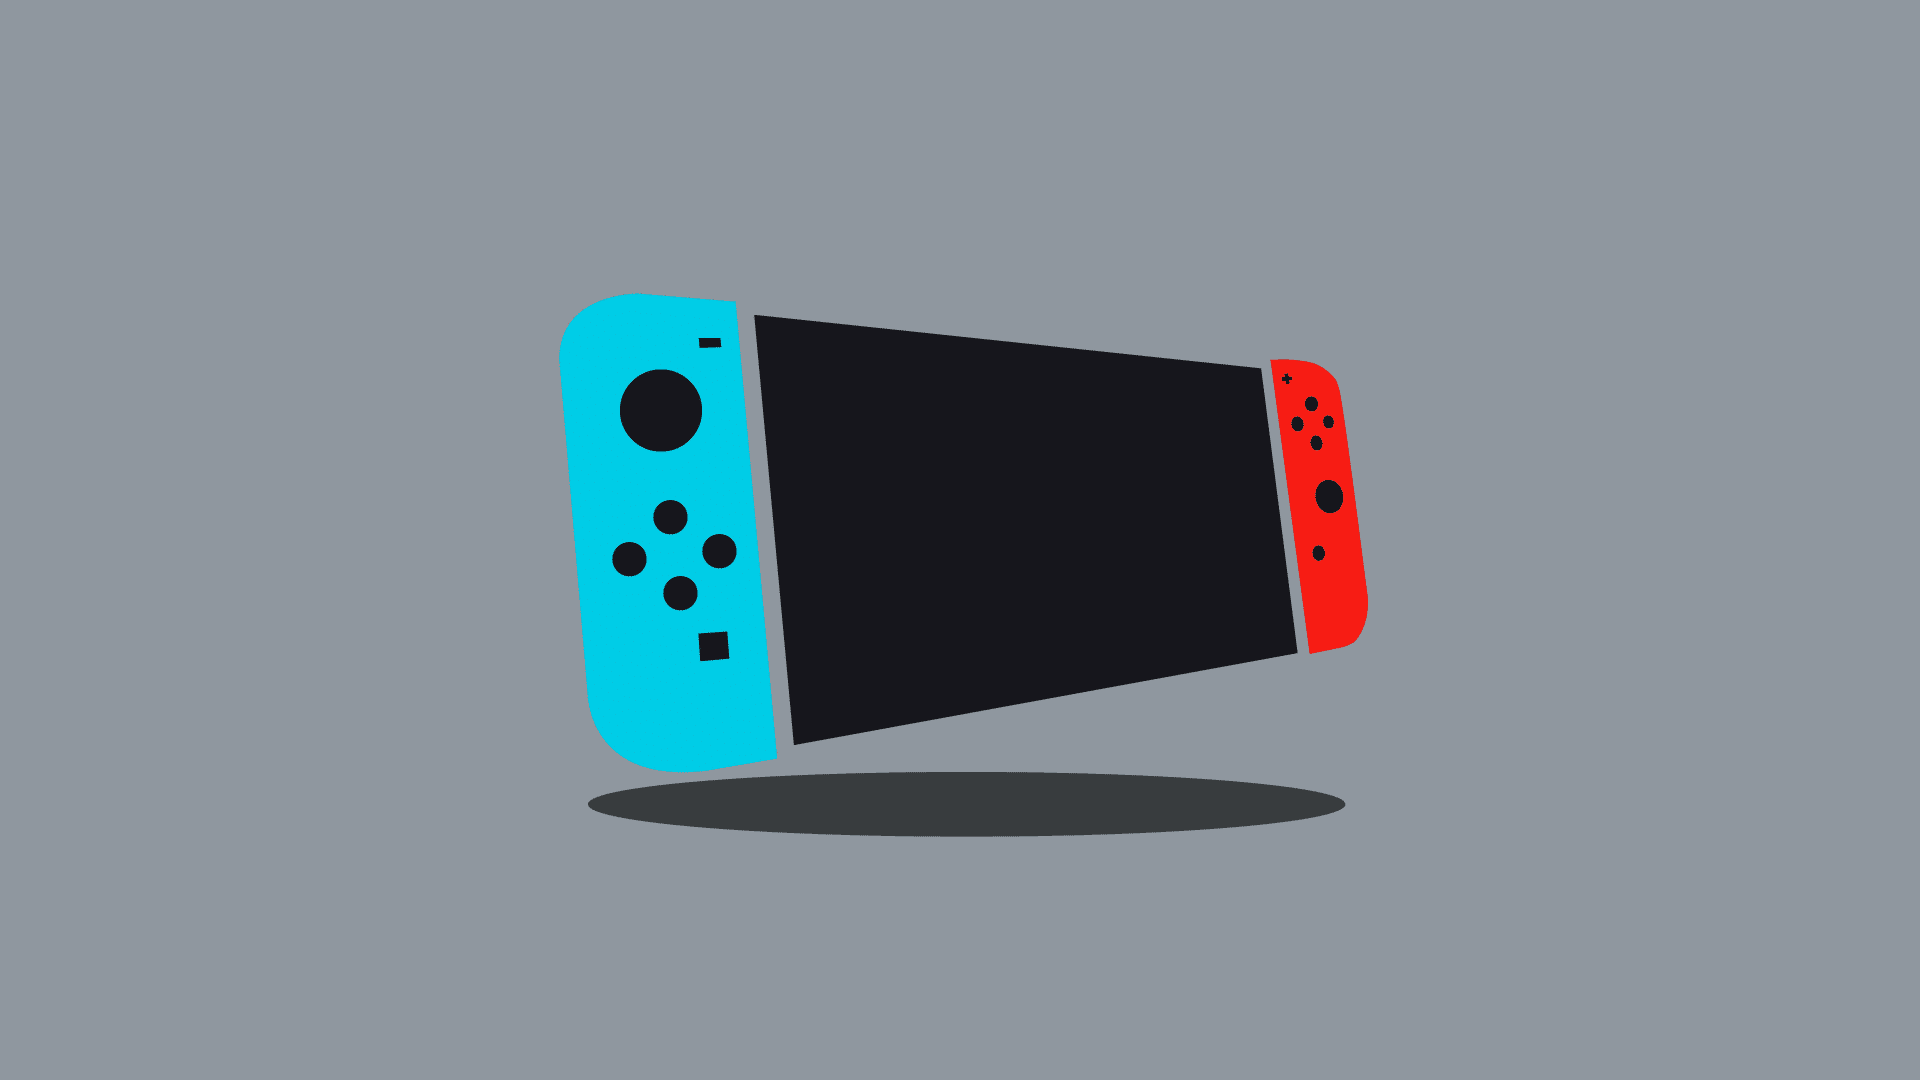 Nintendo – Not worried about PlayStation 5 affecting Switch